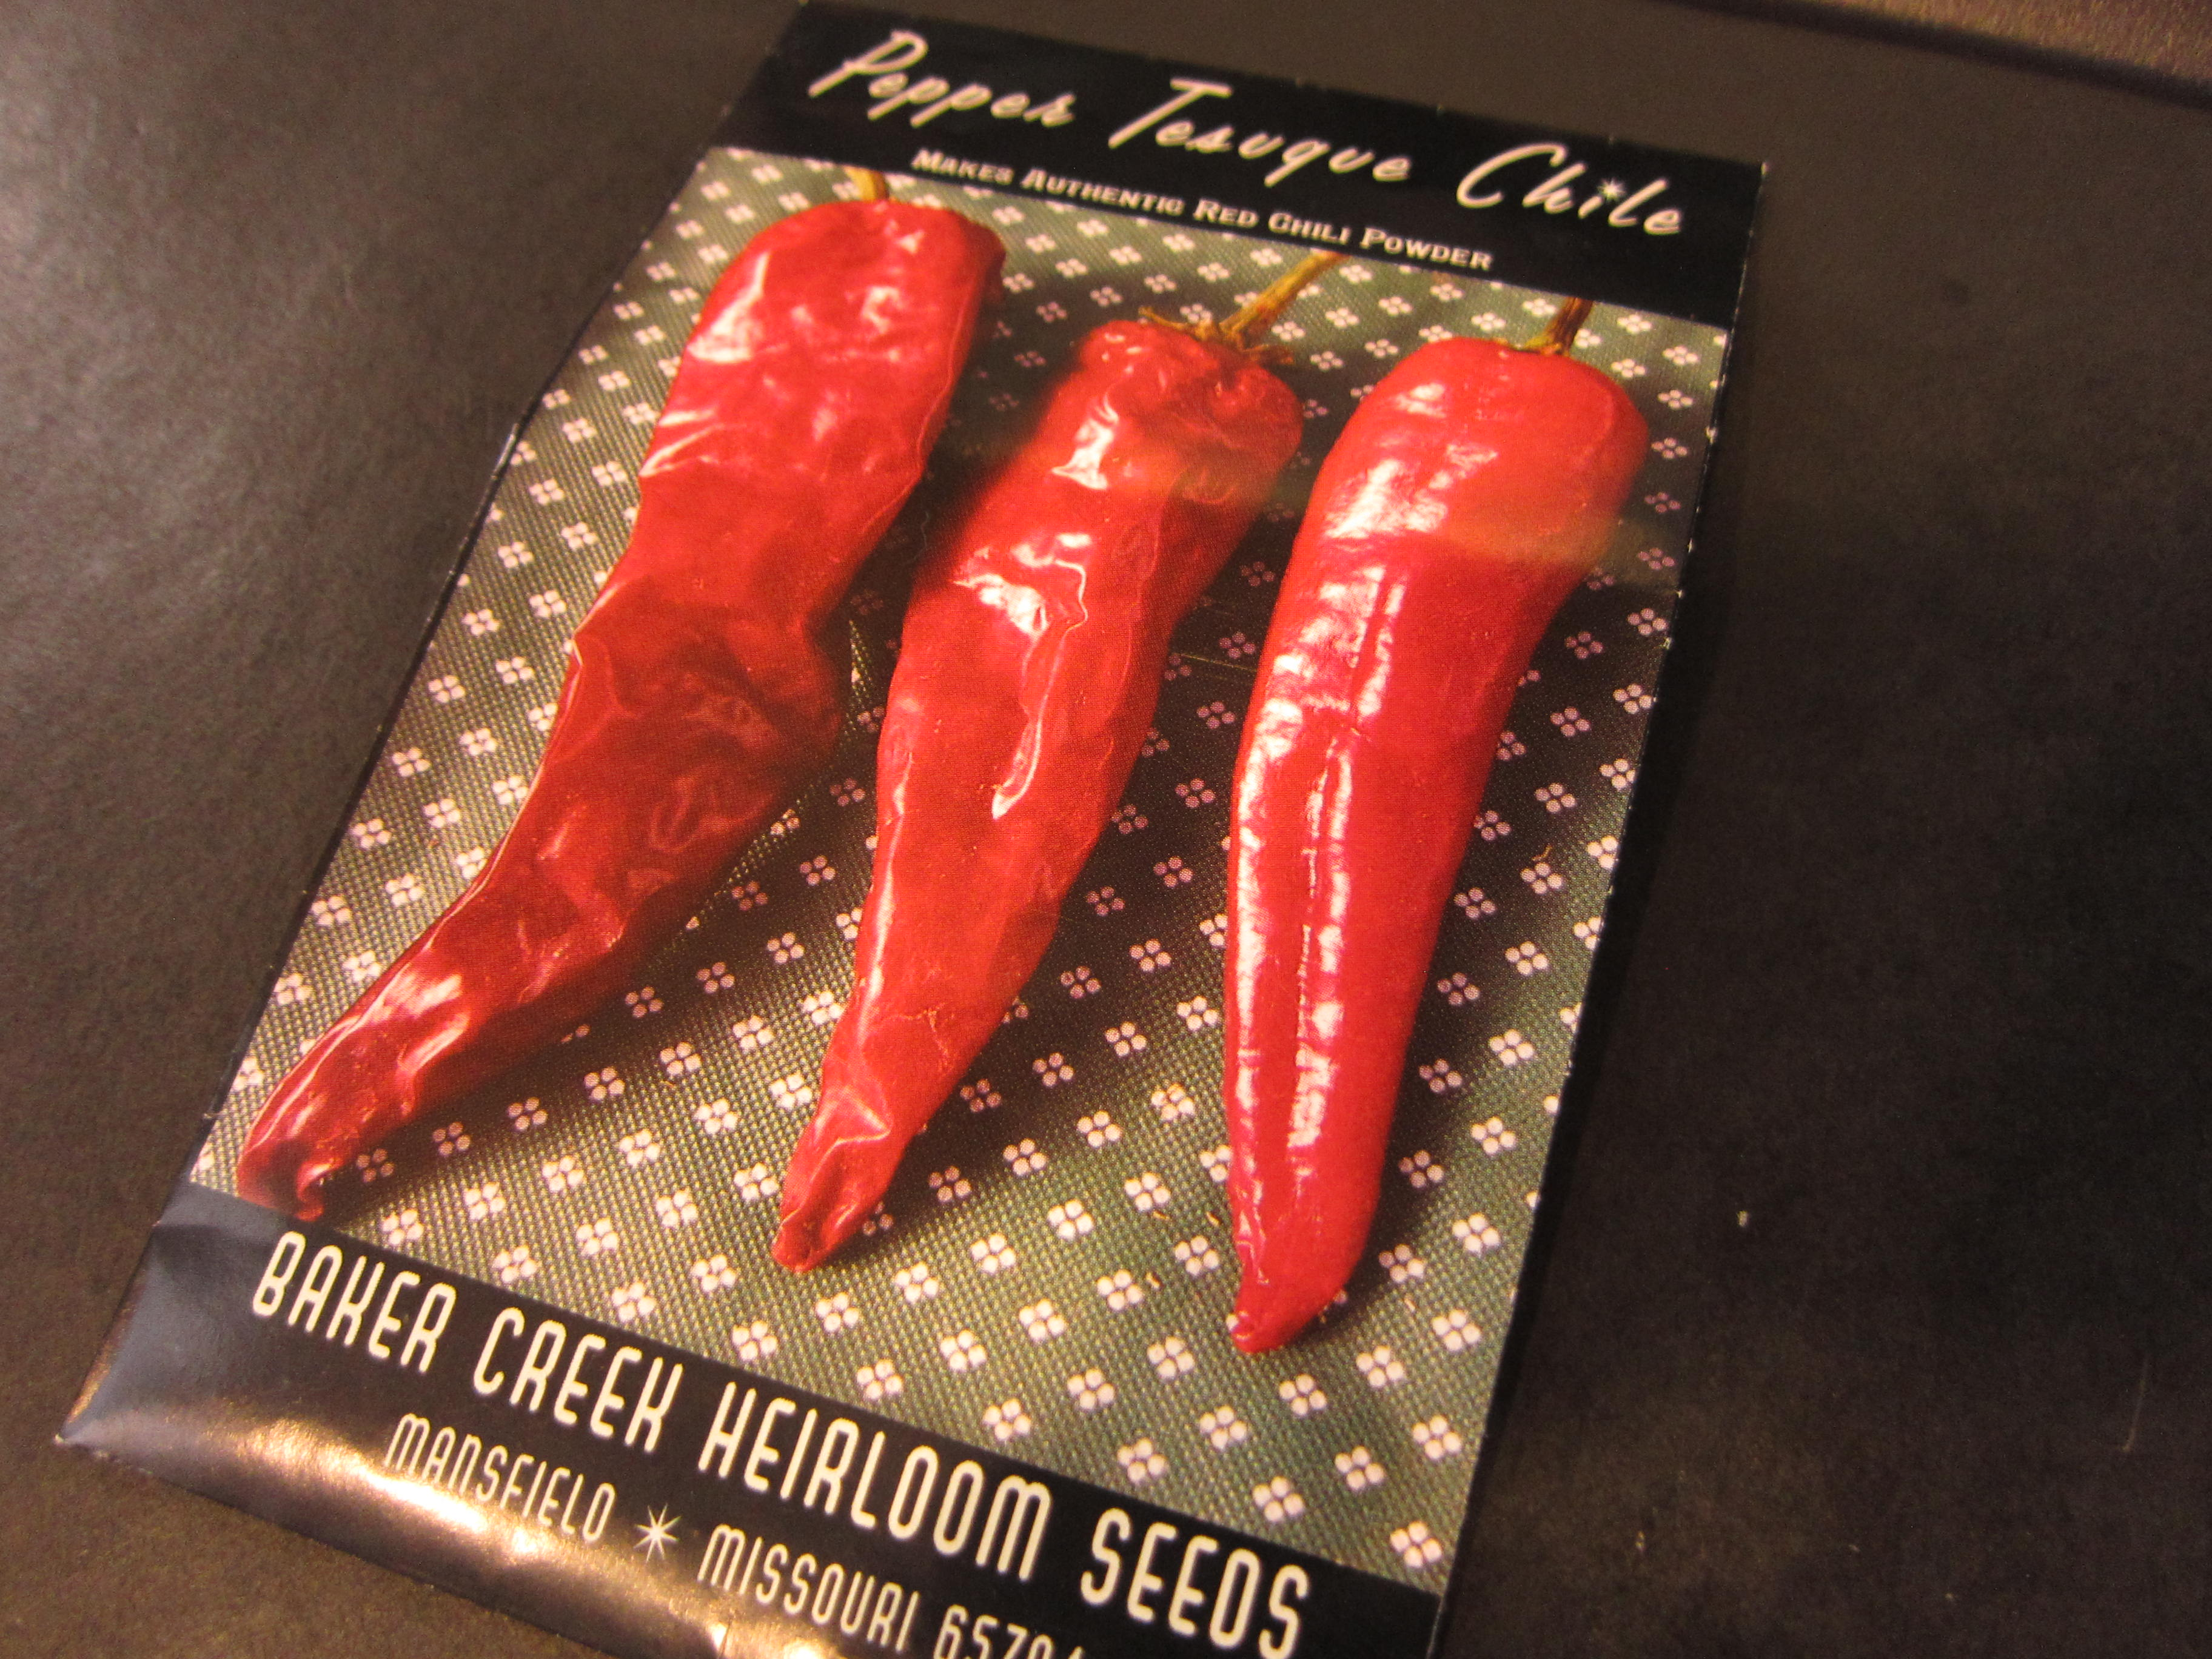 Tesuque is the traditional pepper used for making chili powder in New Mexico.